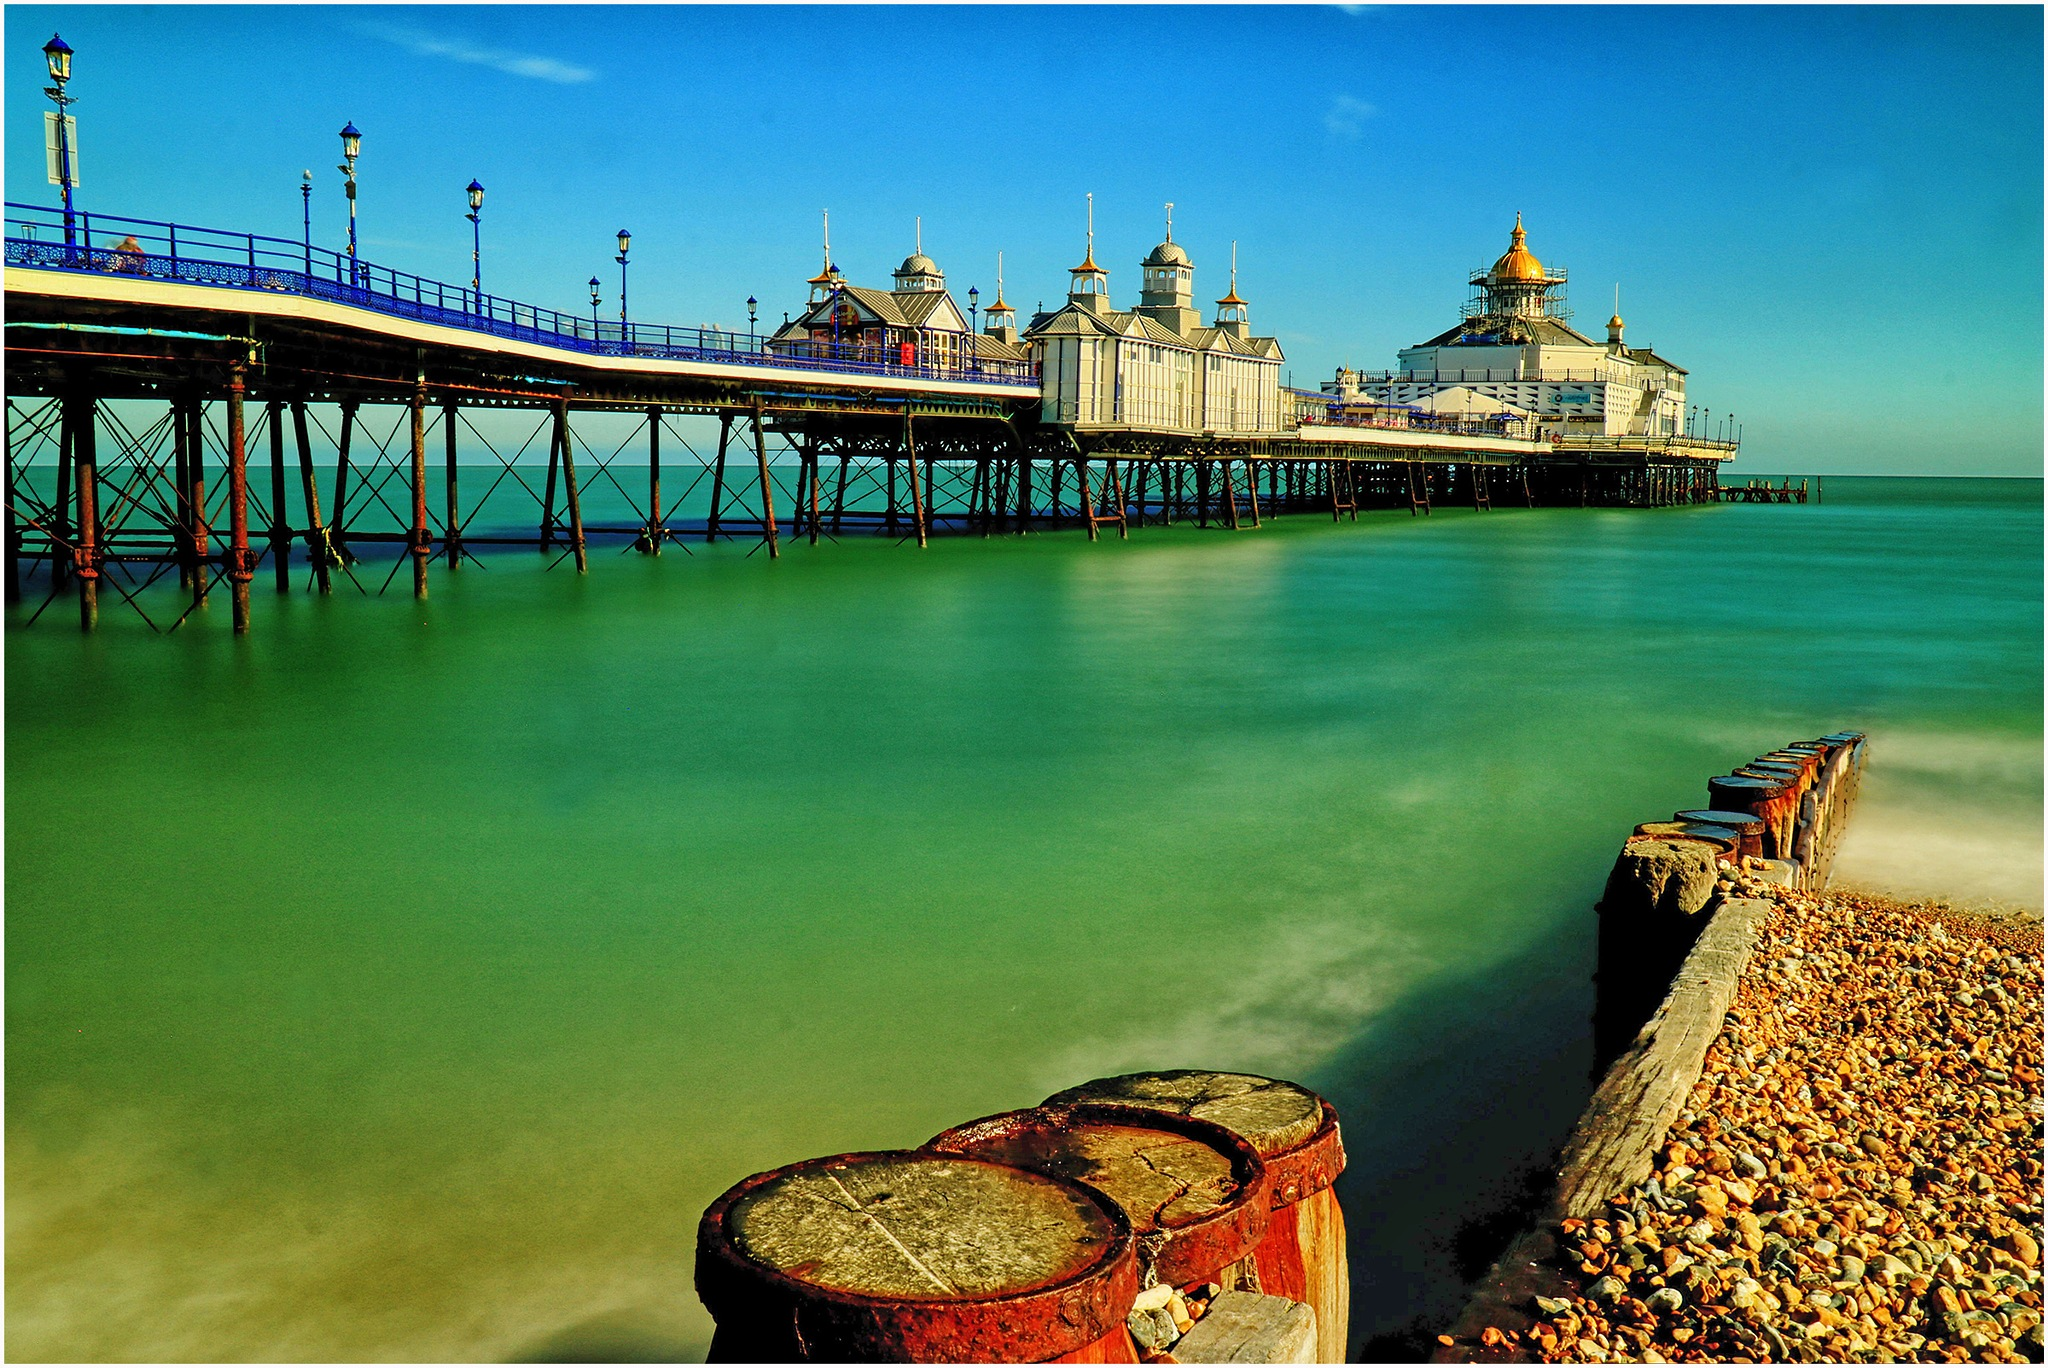 eastbourne pier by Michael Germishuys